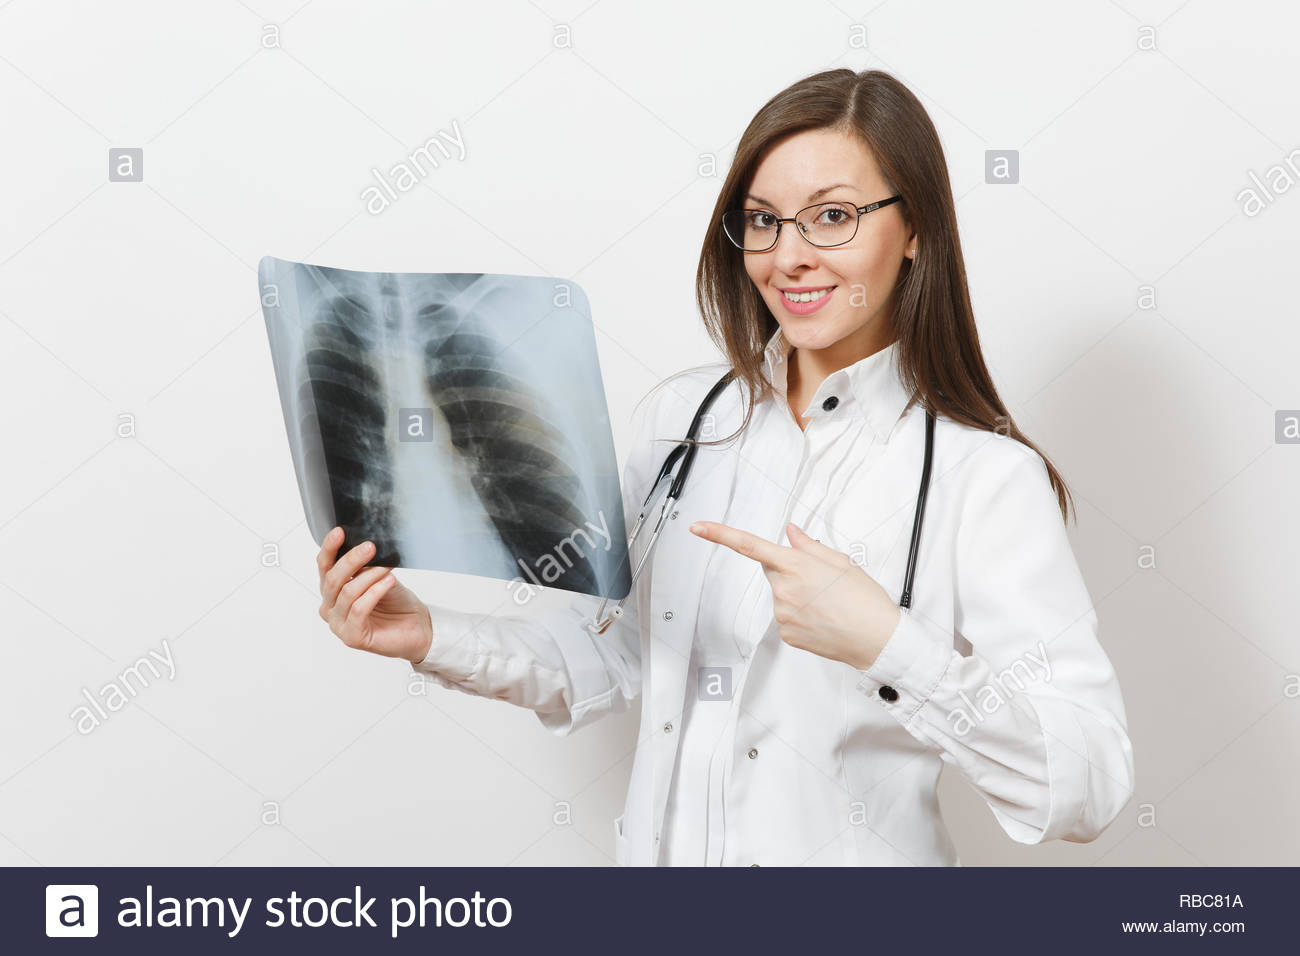 Charming doctor woman pointing index finger on X-ray of lungs, fluorography roentgen isolated on white background. Female doctor in medical gown, stethoscope, glasses. Healthcare personnel. Pneumonia. - Stock Image